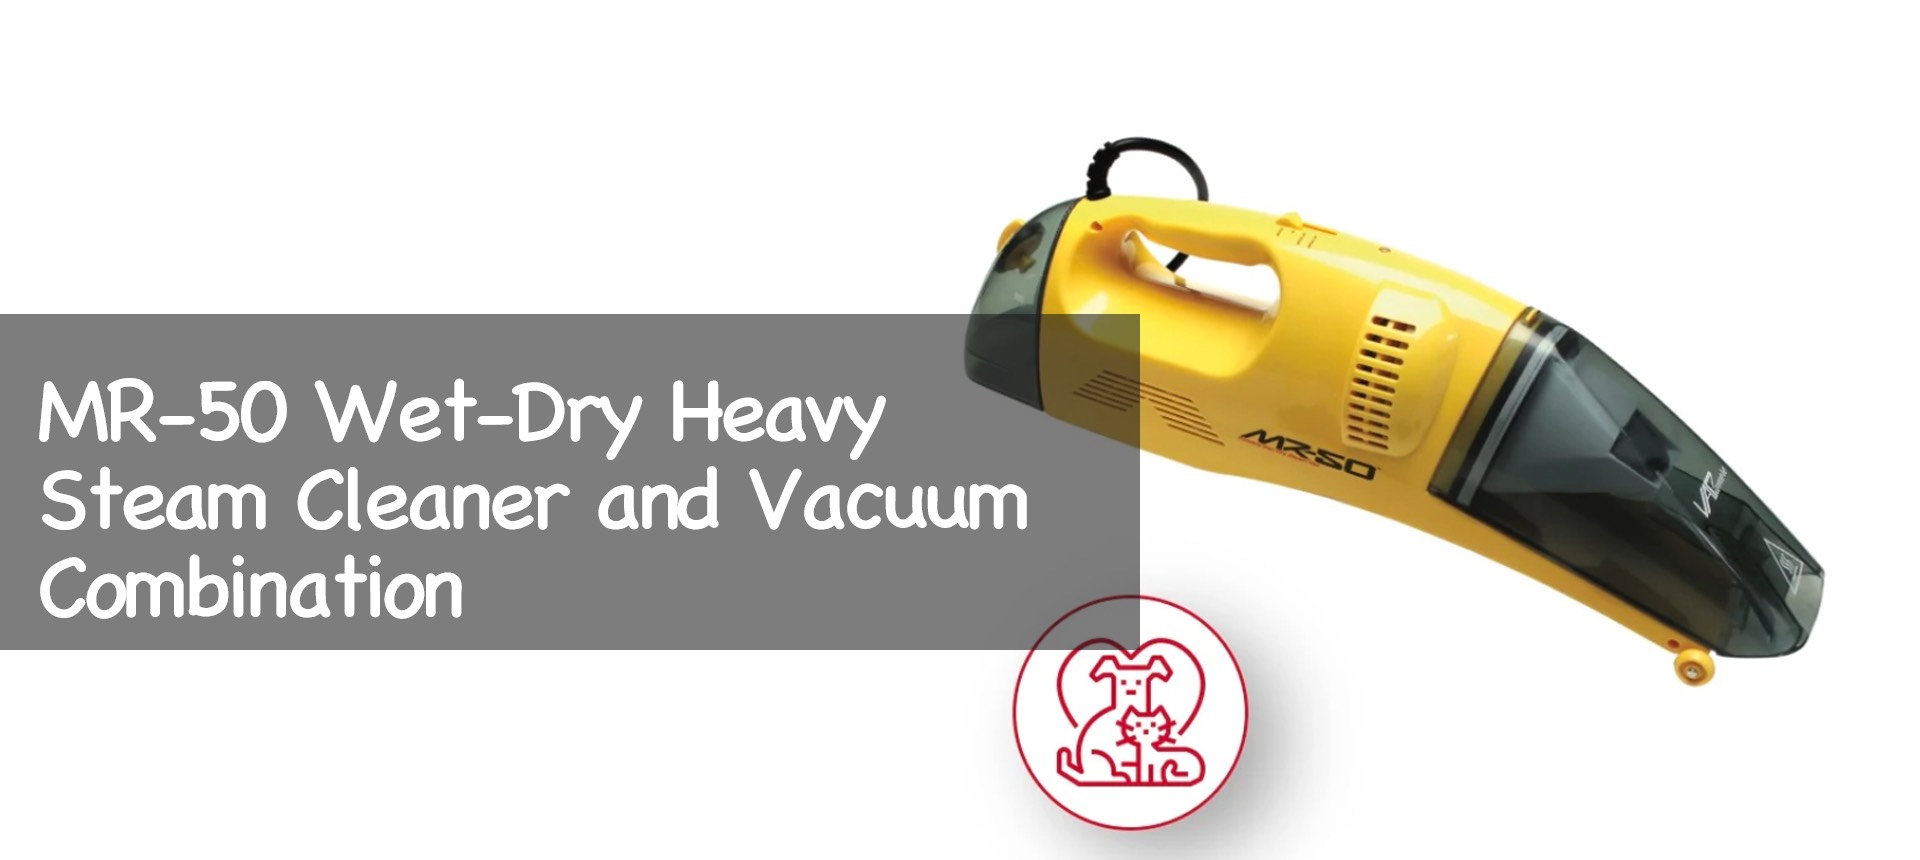 MR-50 Wet-Dry Heavy Steam Cleaner and Vacuum Combination